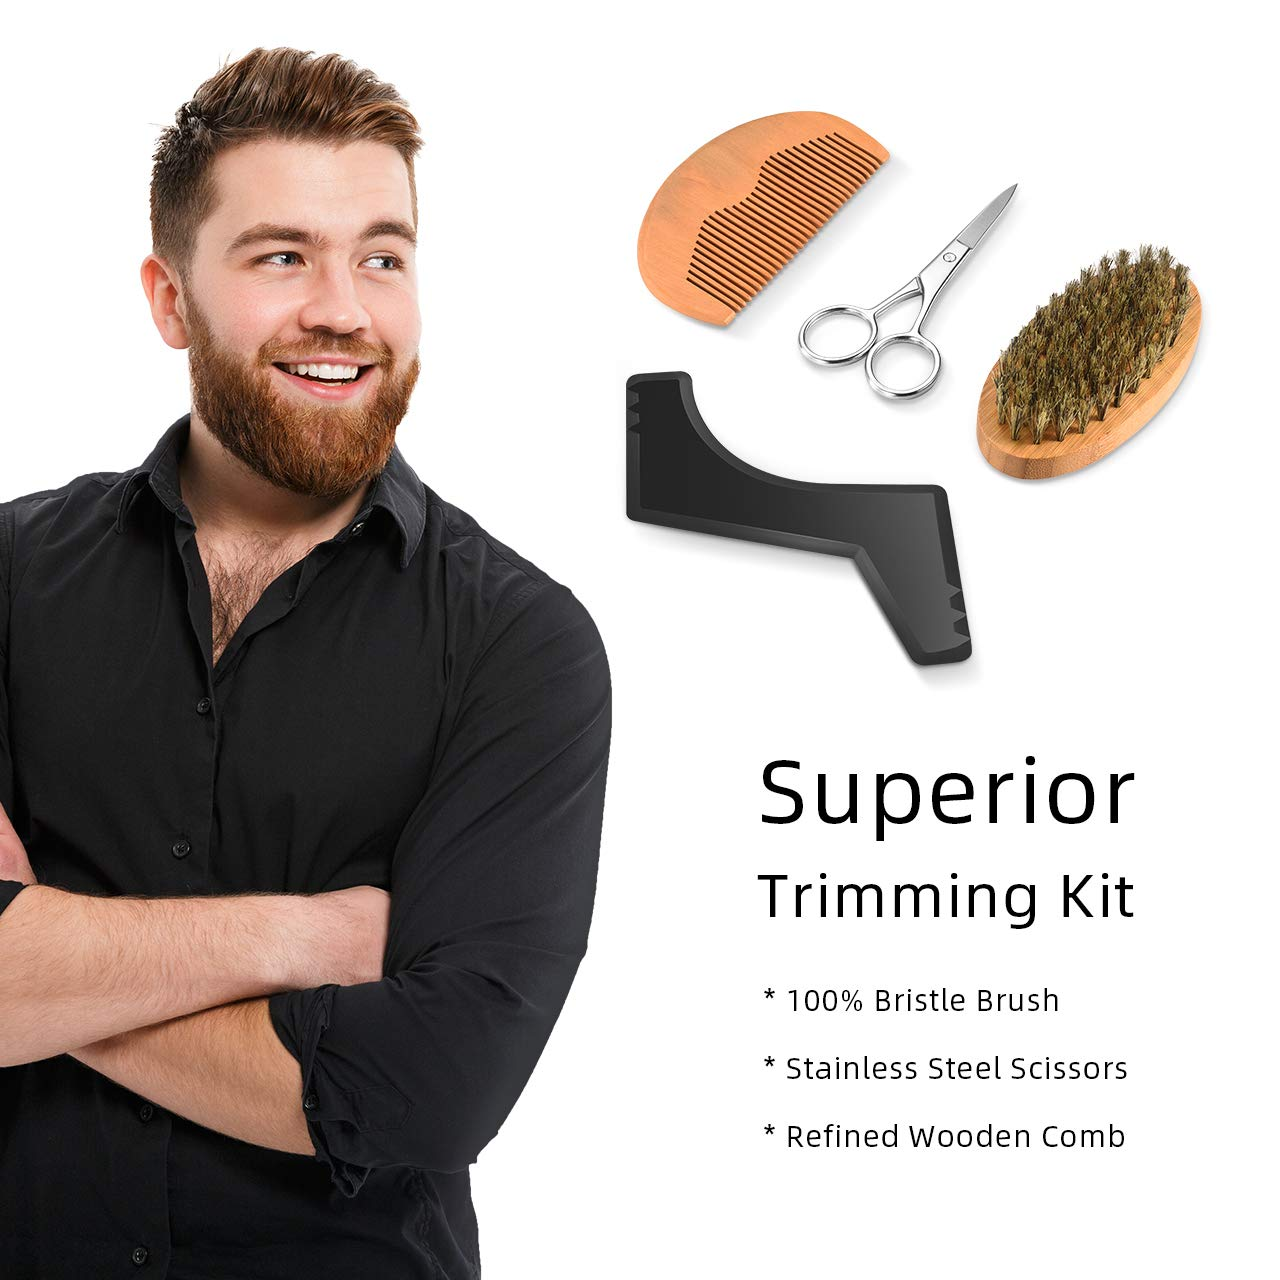 ATMOKO Beard Kit, 9 in 1 Beard Grooming Kit for Men Beard Care with Beard Shampoo, Oil,Conditioner, Comb, Brush, Scissor, Apron, Shaping Tool and Storage Bag, Good Gift for Husband,Boyfriend and Dad